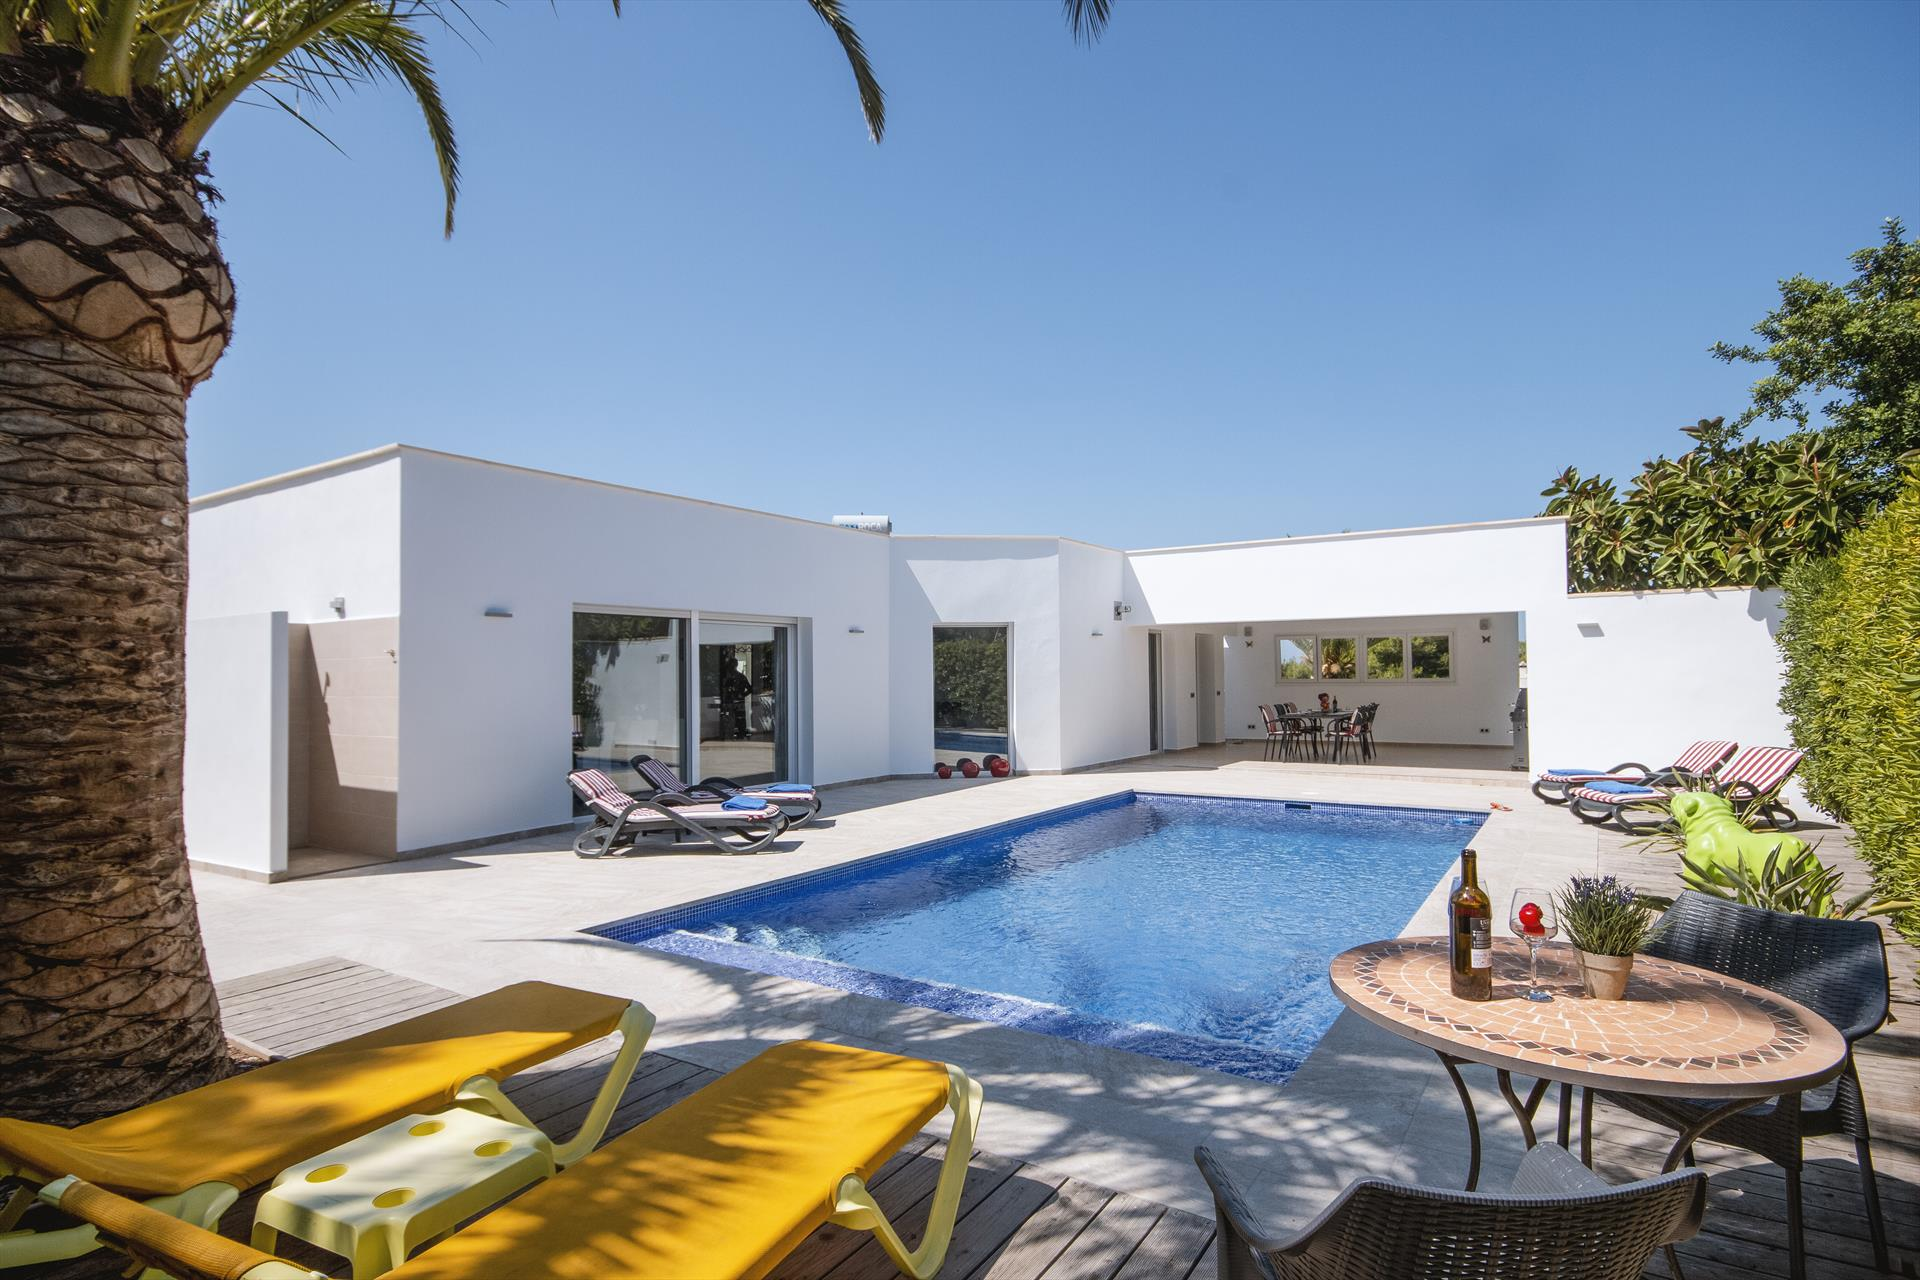 Mercedes, Beautiful and cheerful holiday home  with private pool in Javea, on the Costa Blanca, Spain for 4 persons.....